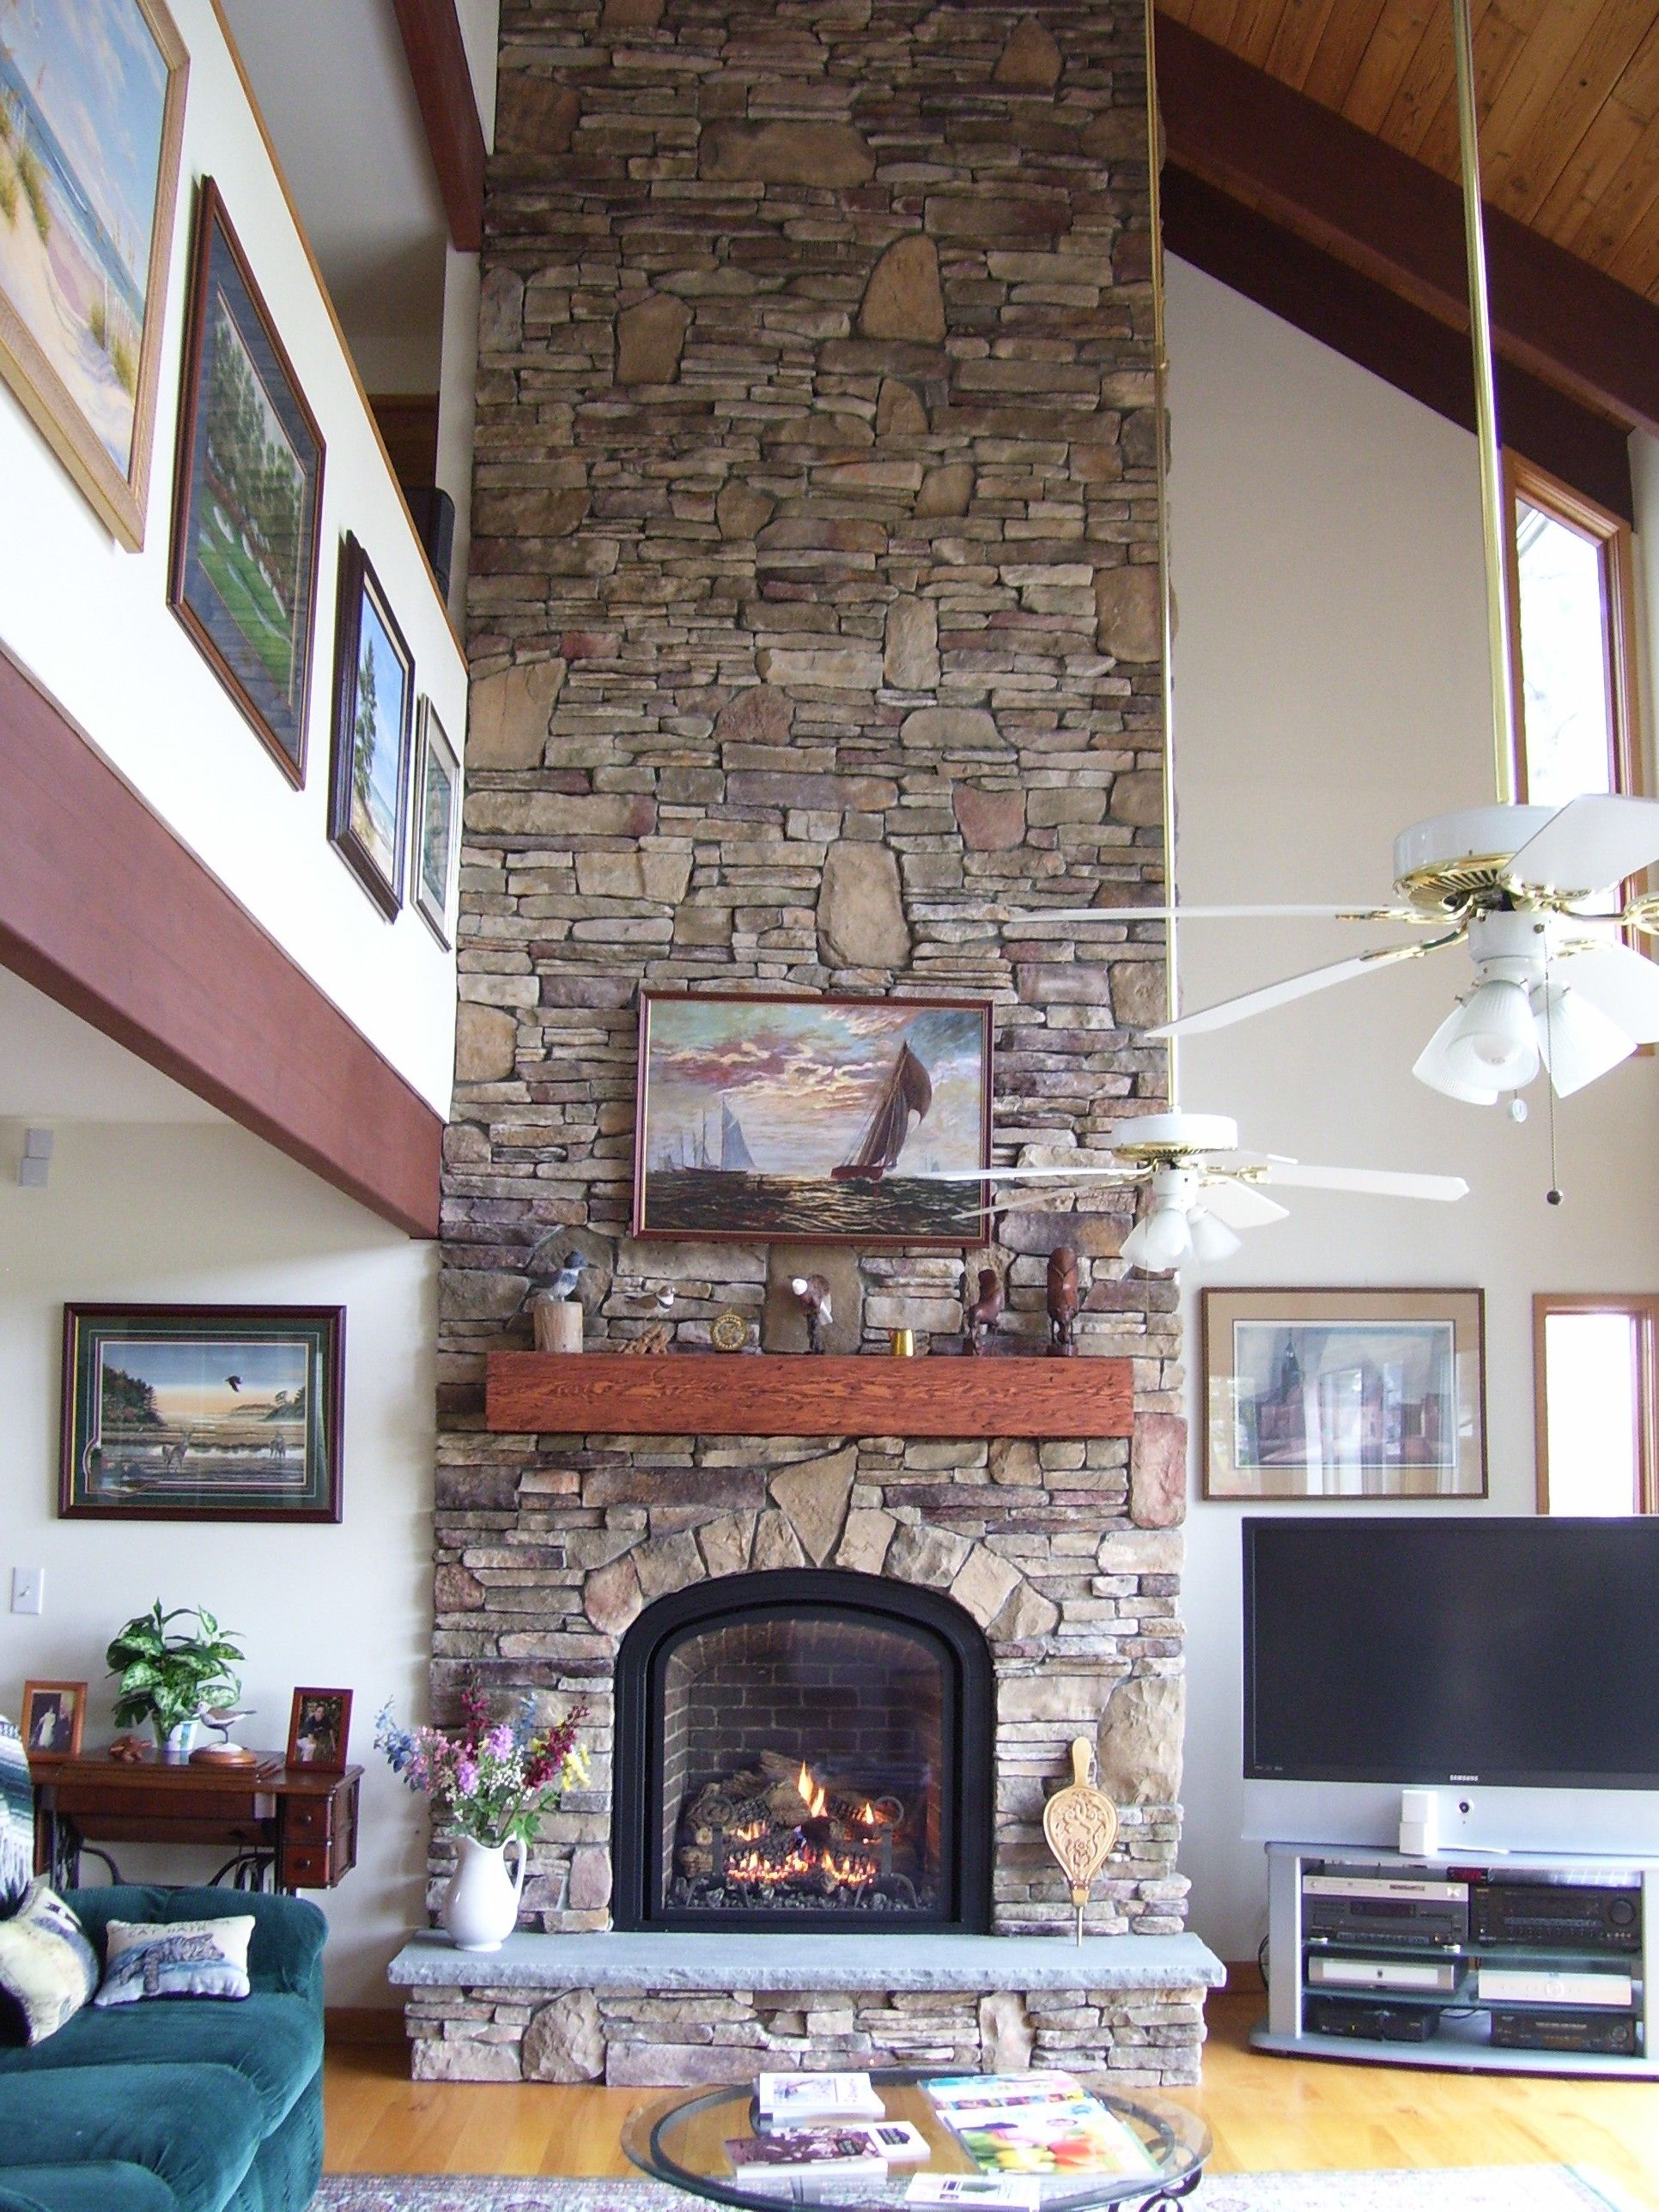 Leonardus Stone and Fireplace fireplacetx on Pinterest